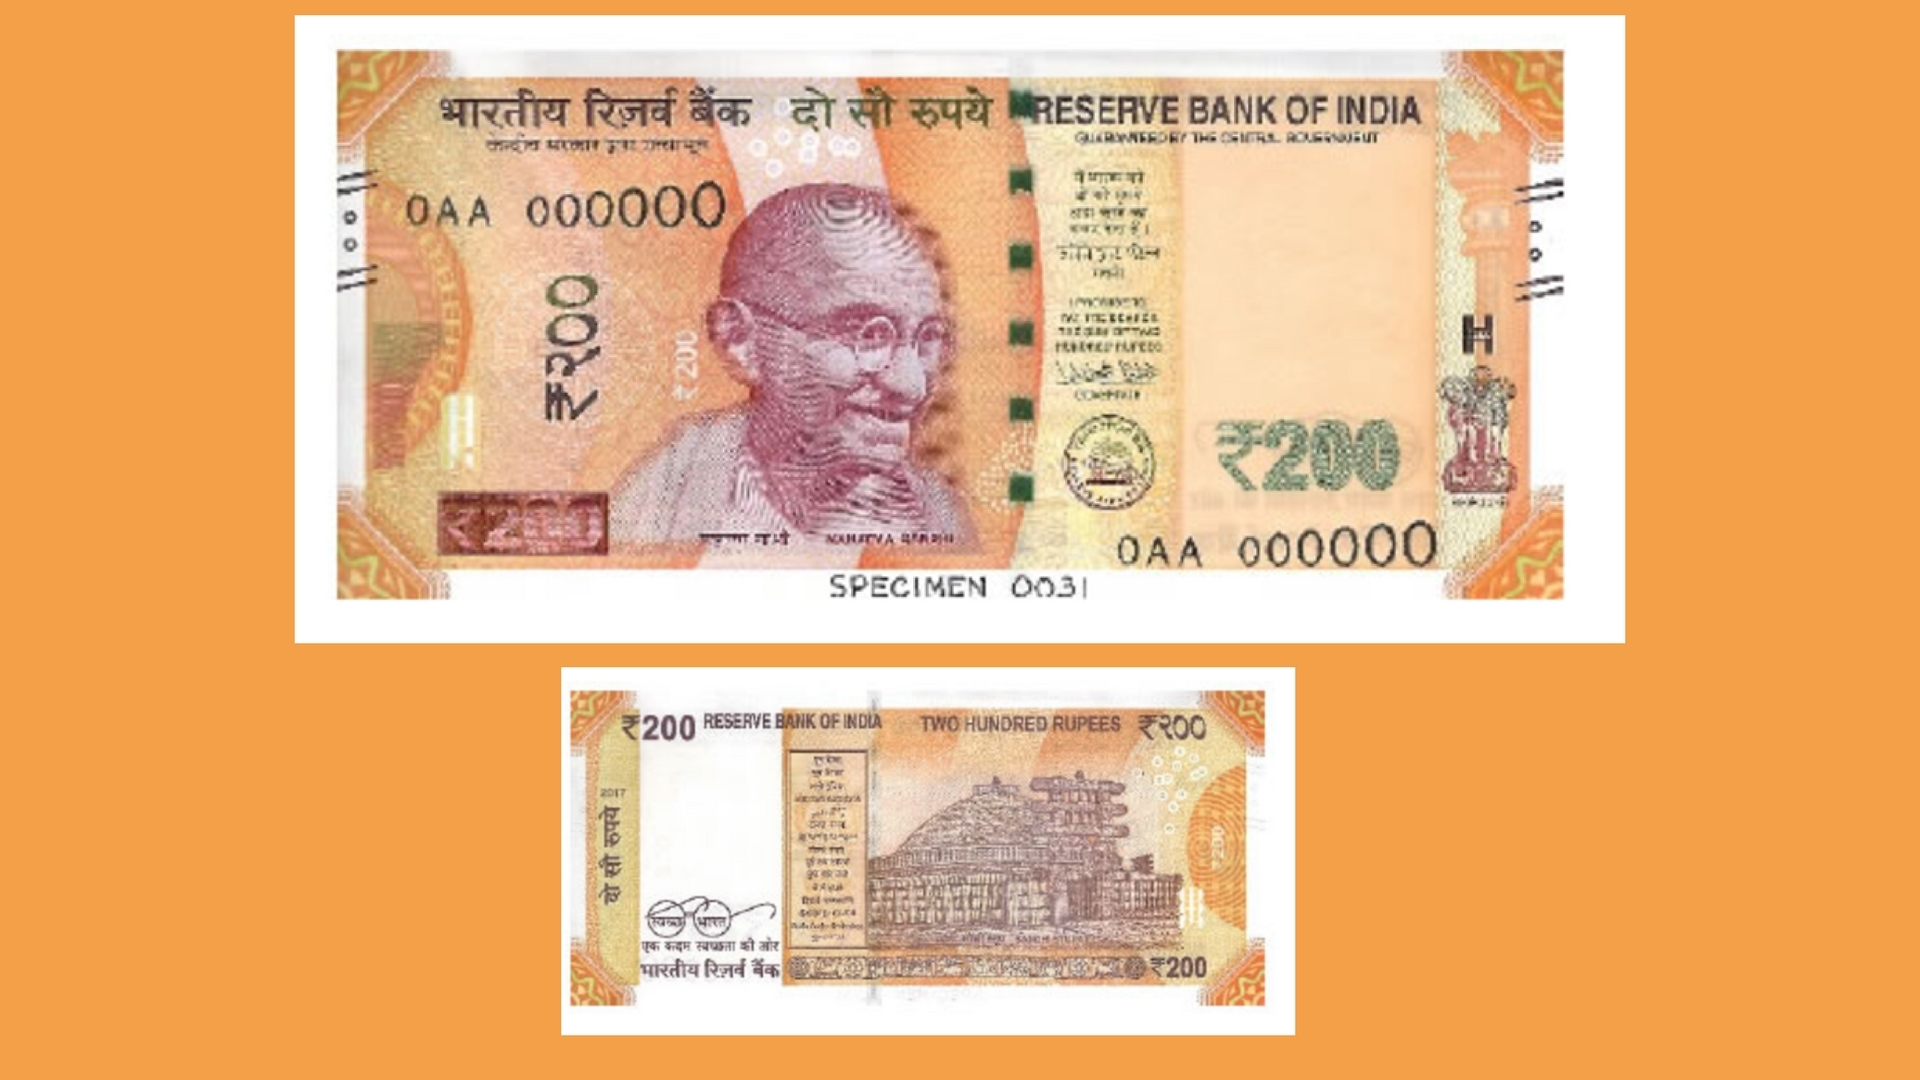 Yellow Rs 200 Notes Are Here! Use This Guide to Spot Fake Notes